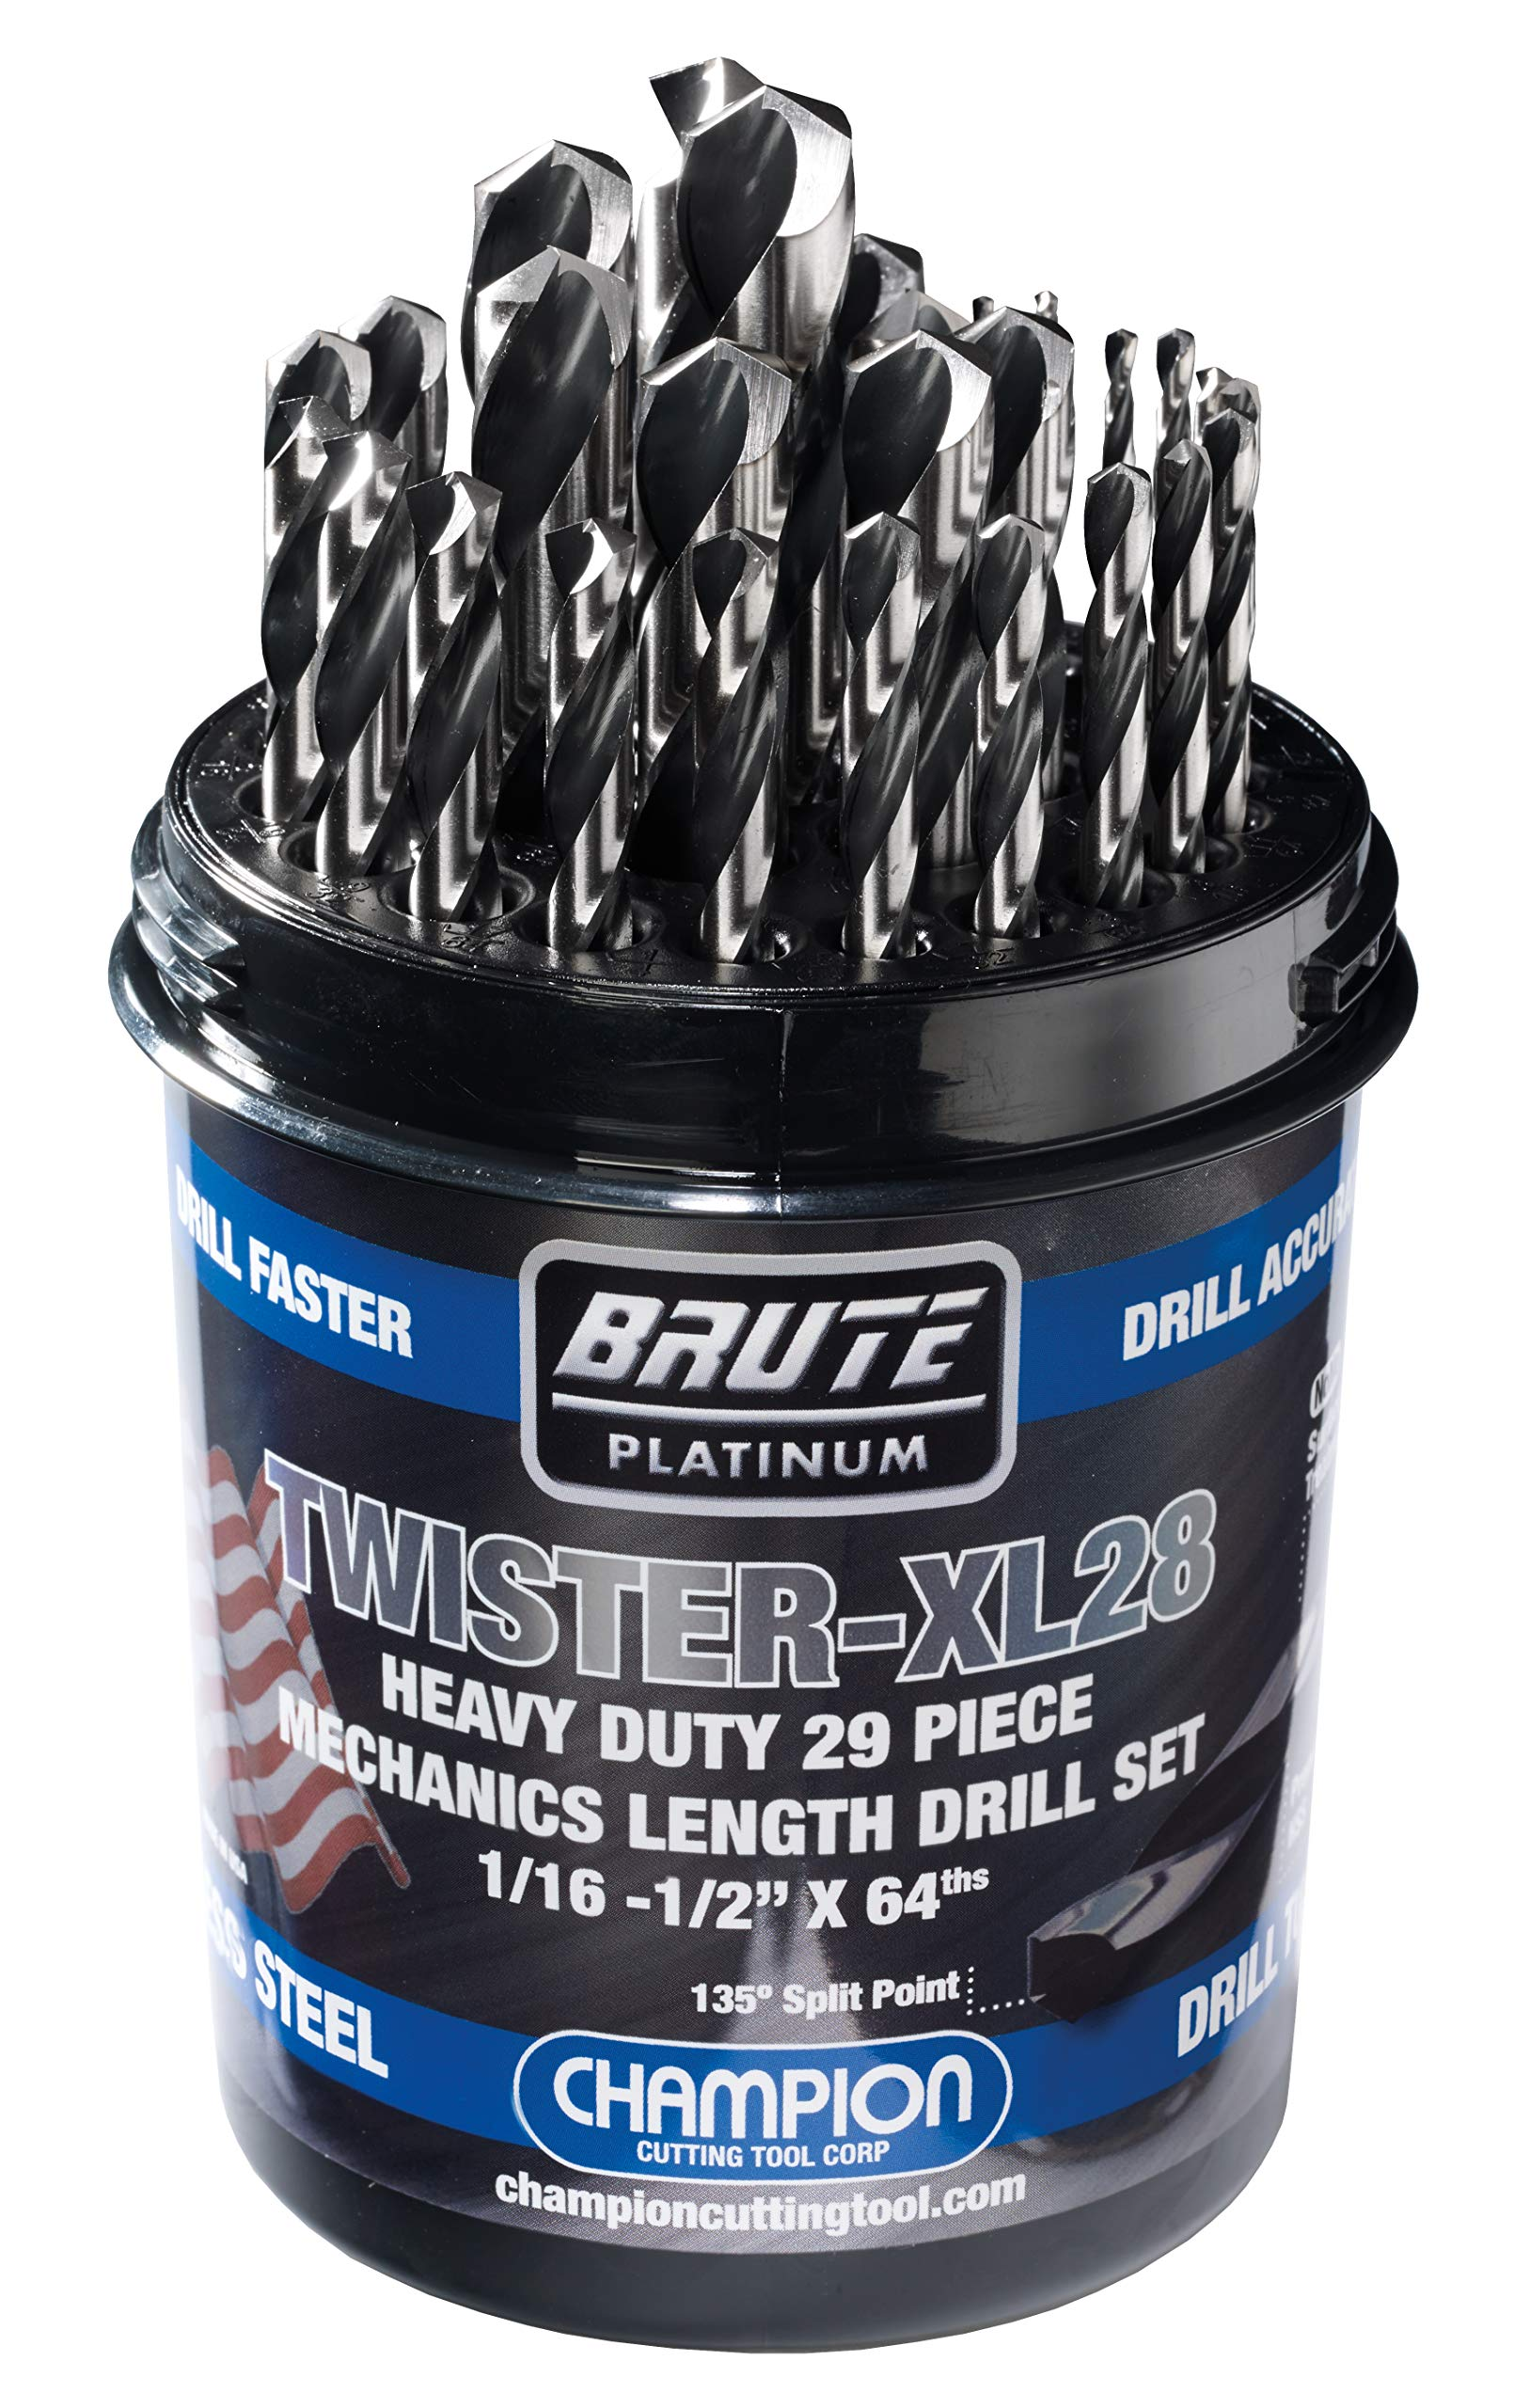 Champion Cutting Tool Brute Platinum 29 Piece 1/16-1/2'' x 64ths  HSS Mechanics Length Twister-XL28 Drill Bit Set-135 Degree Split Point, Water Resistant Index-MADE IN USA by Champion Cutting Tool Corp